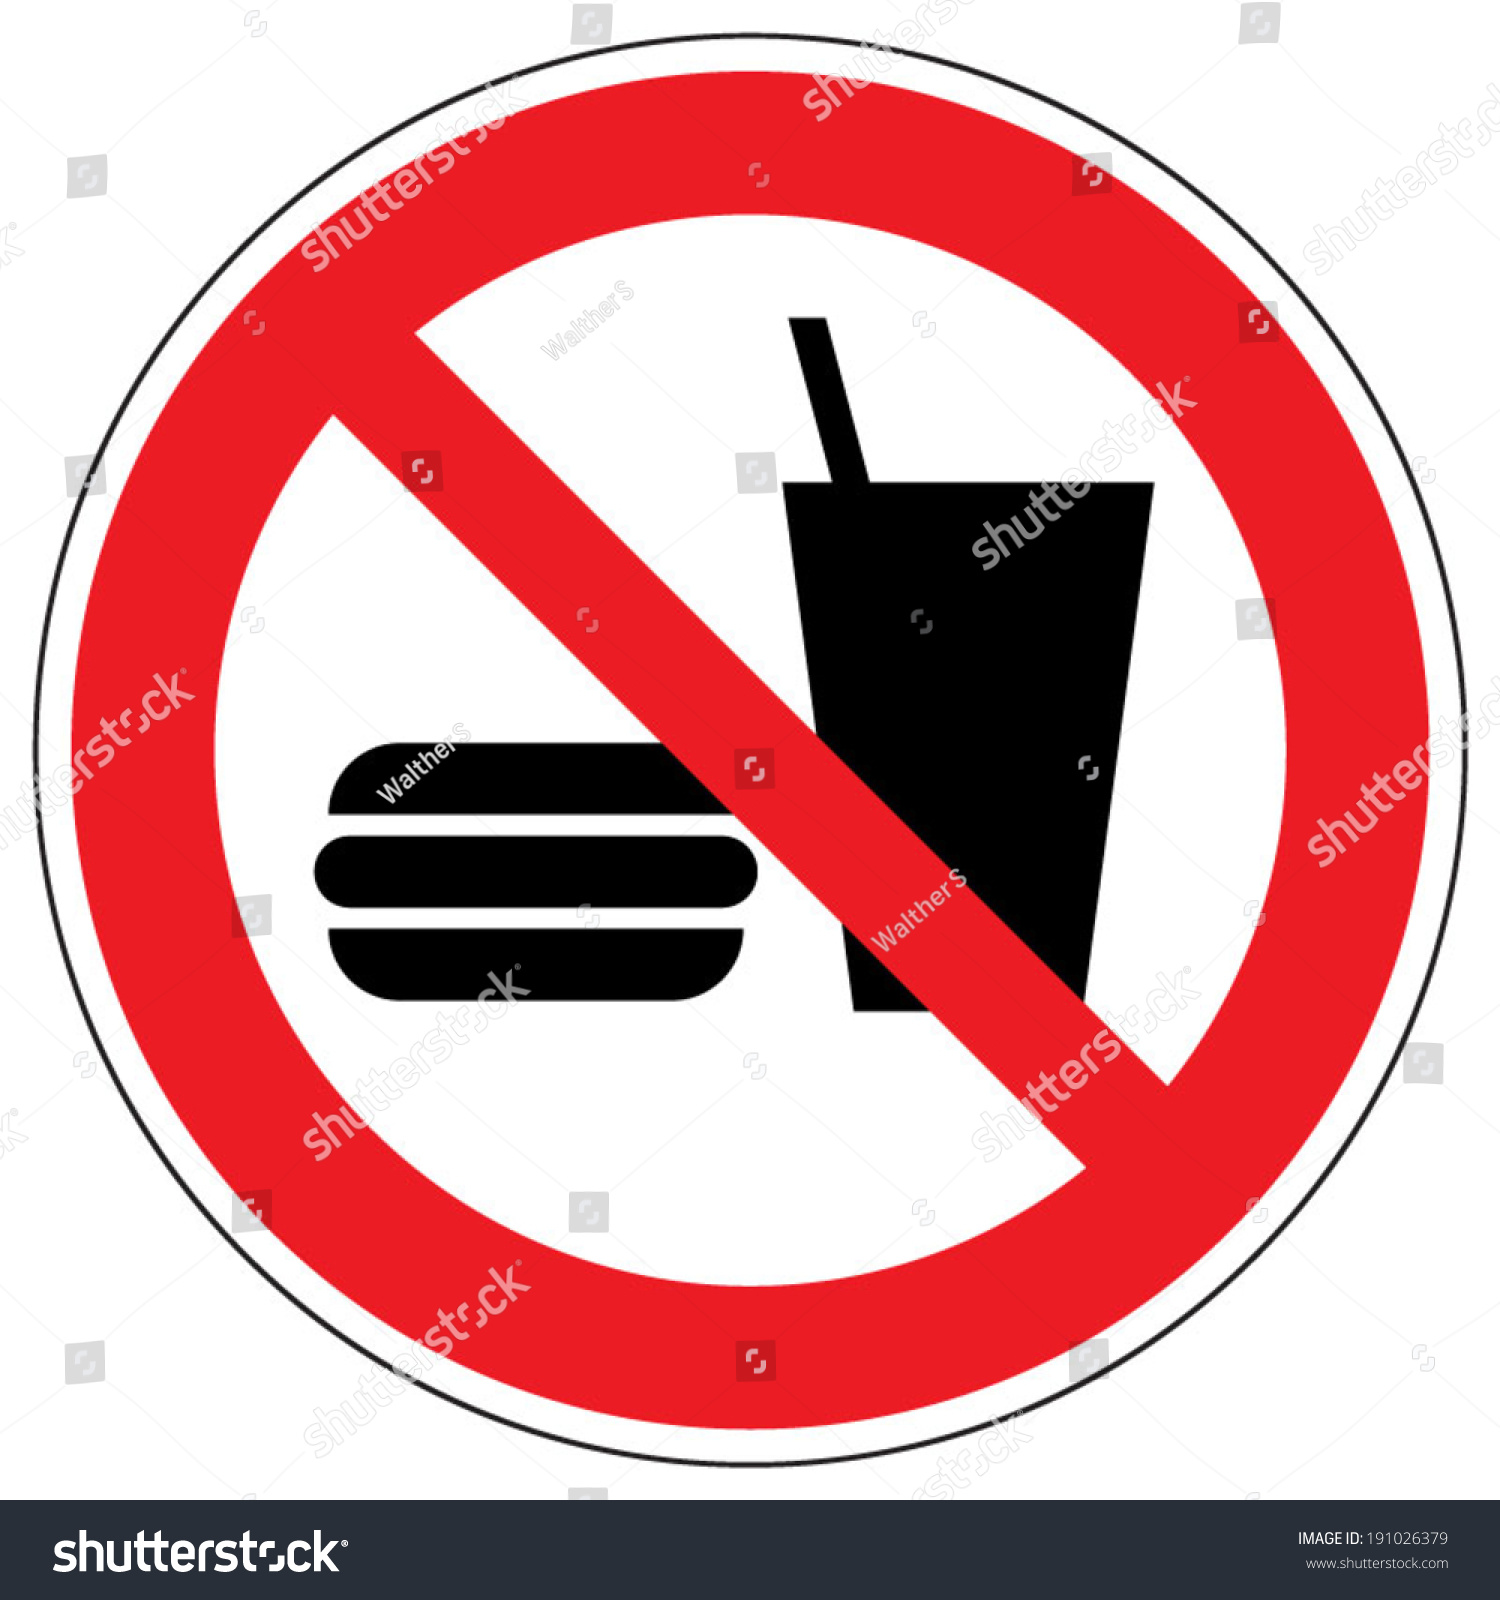 Что такое eating prohibitted 3 фотография